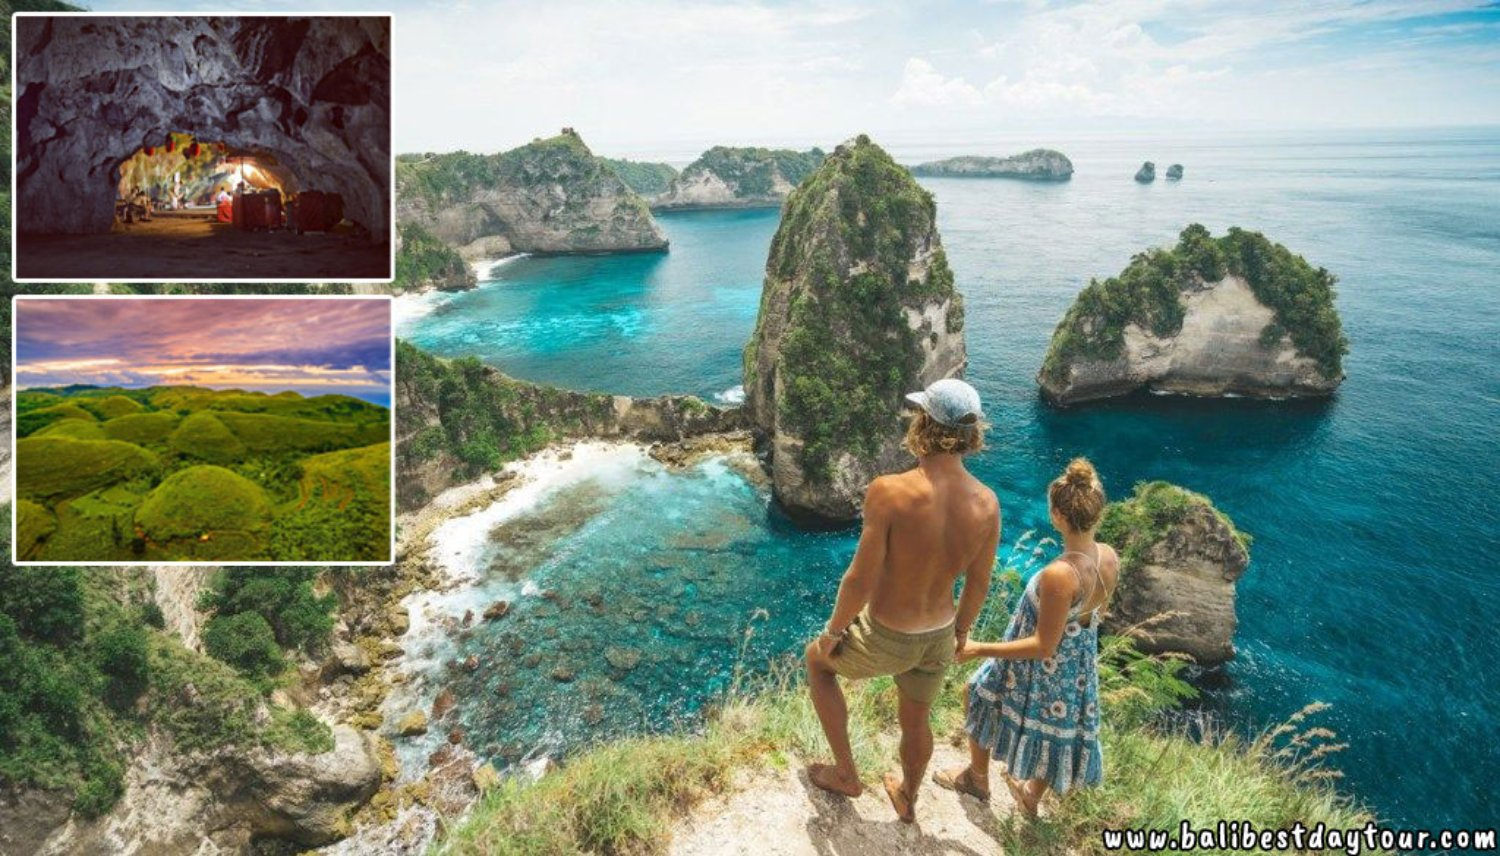 Special Price for Nusa Penida Day Tour Package